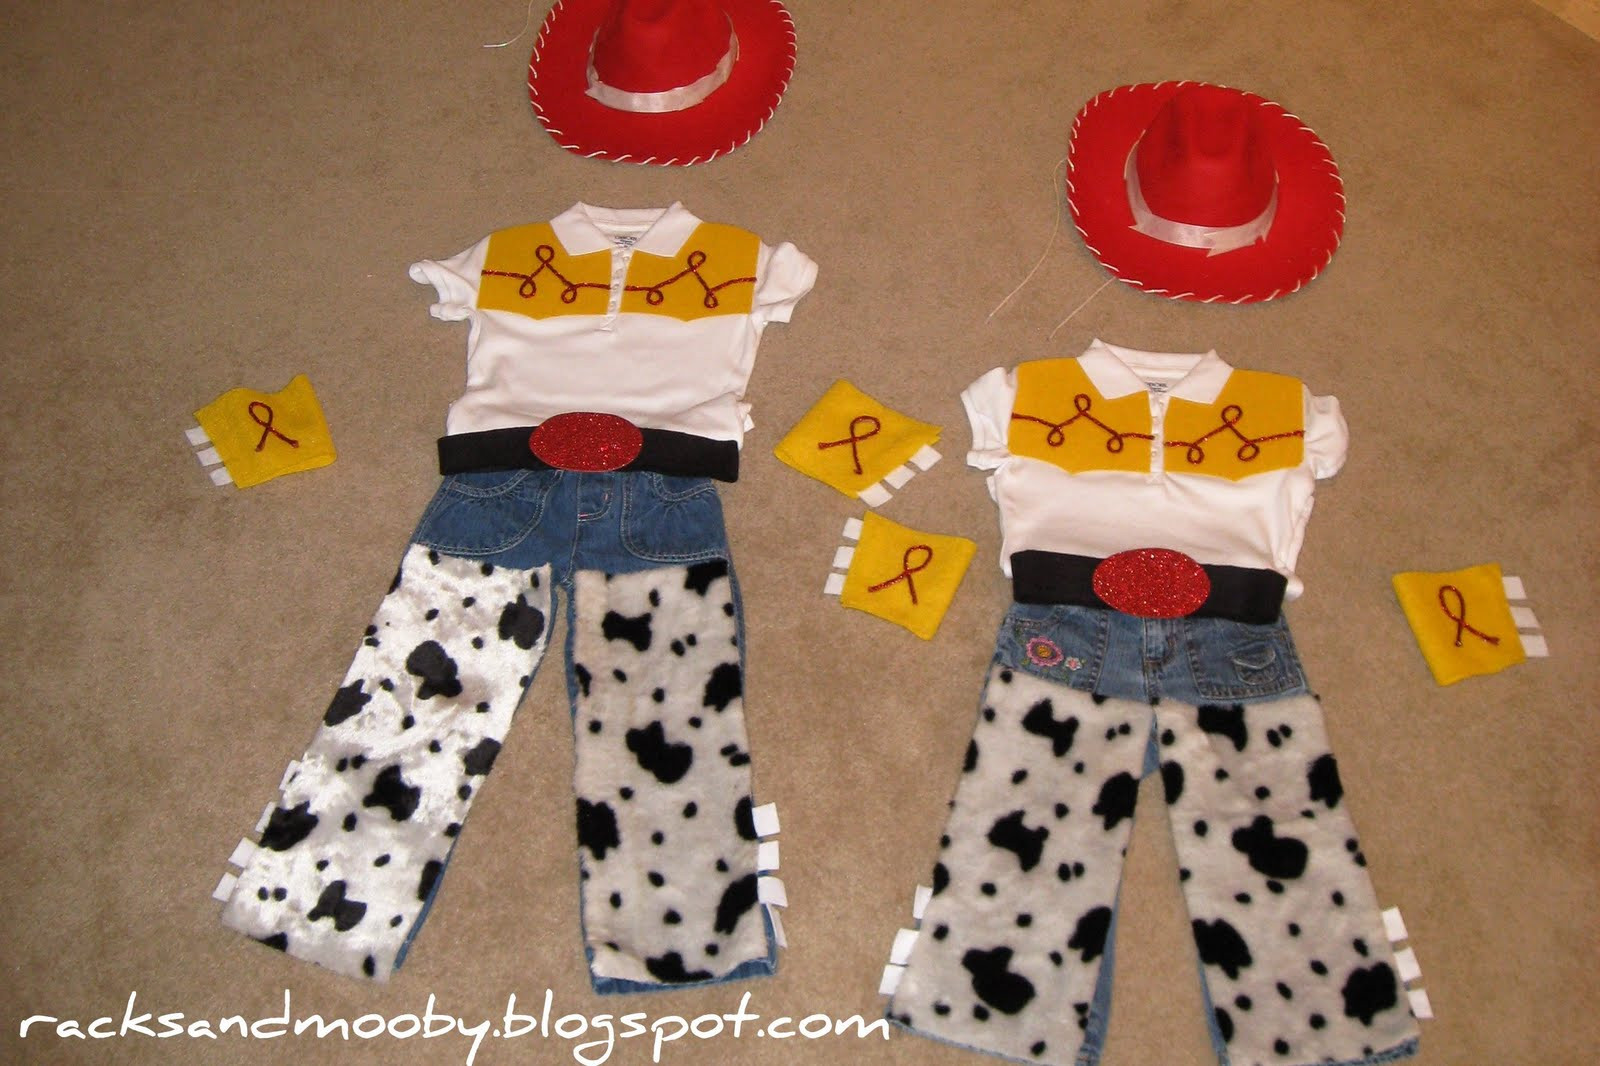 Best ideas about Jessie Toy Story Costume DIY . Save or Pin RACKS and Mooby DIY Jessie Toy Story Toddler Costume Now.